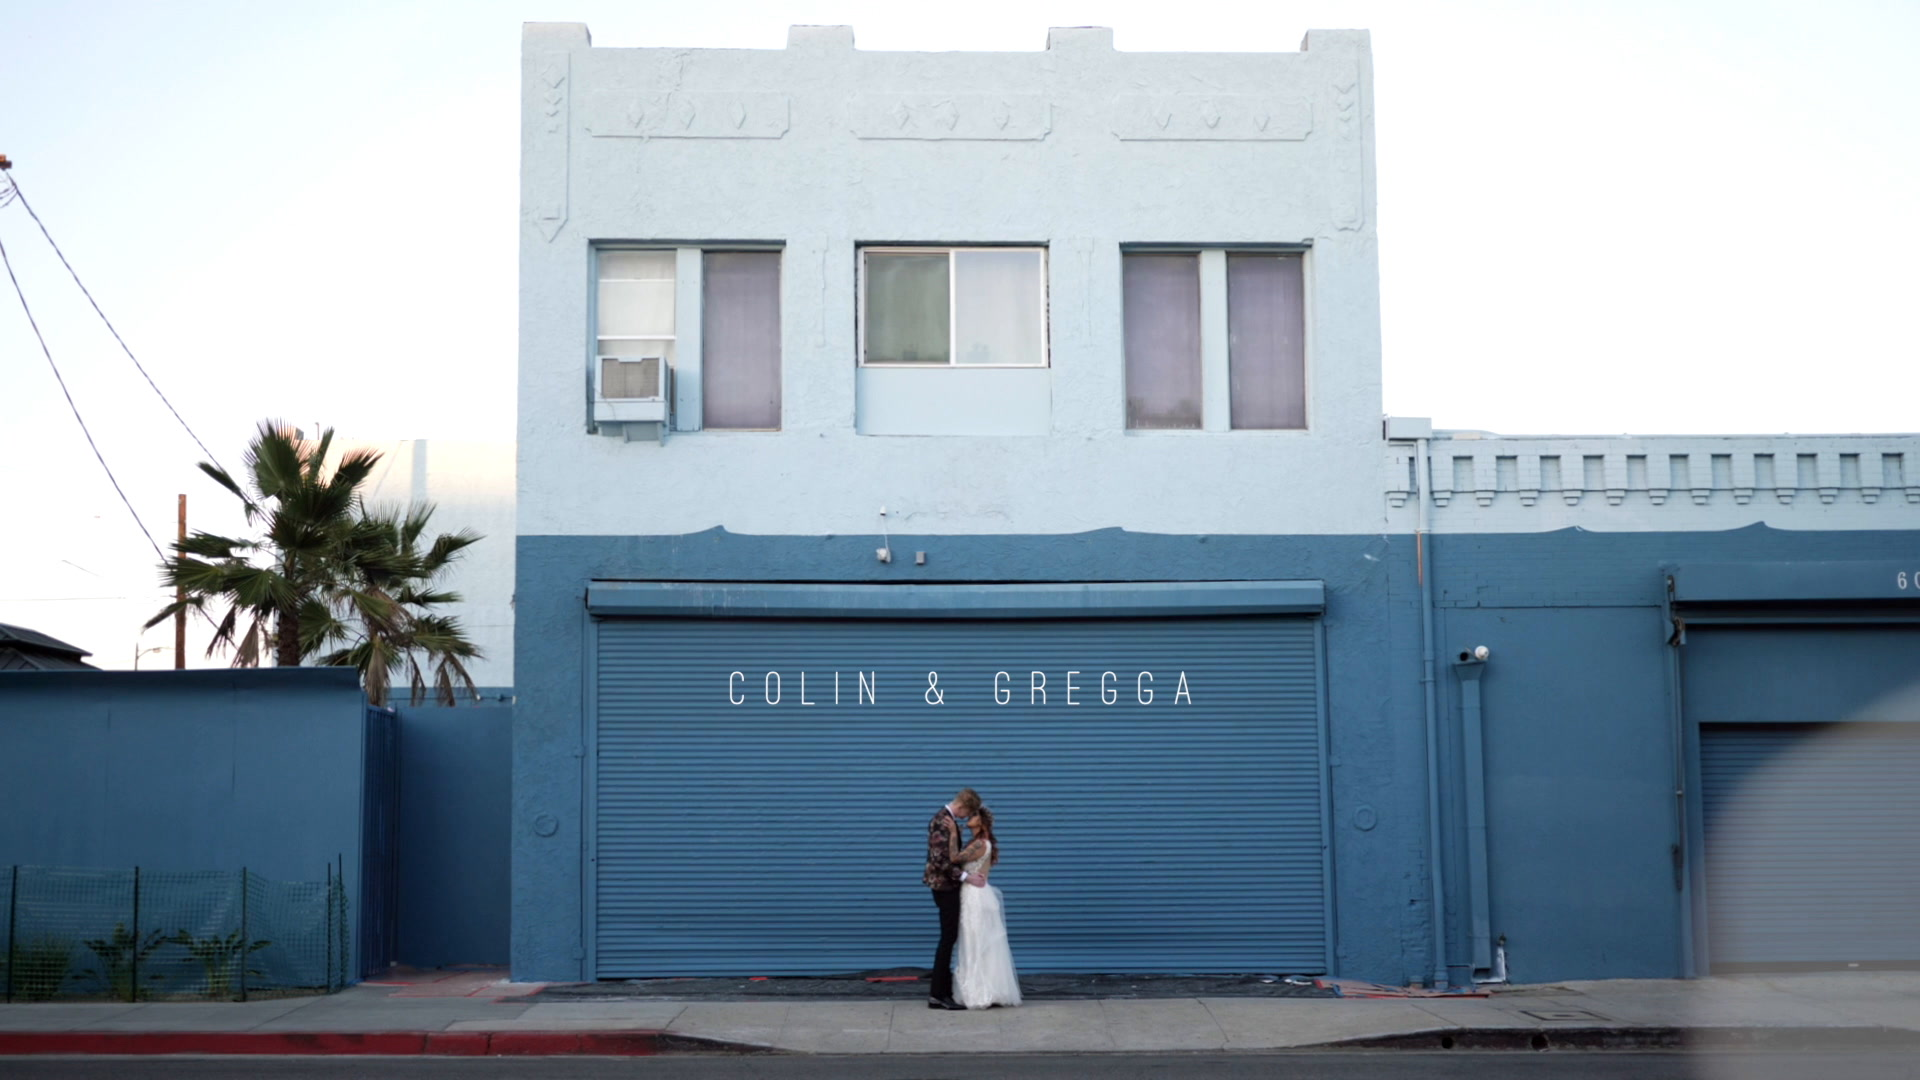 Gregga + Colin | Los Angeles, California | Valentin